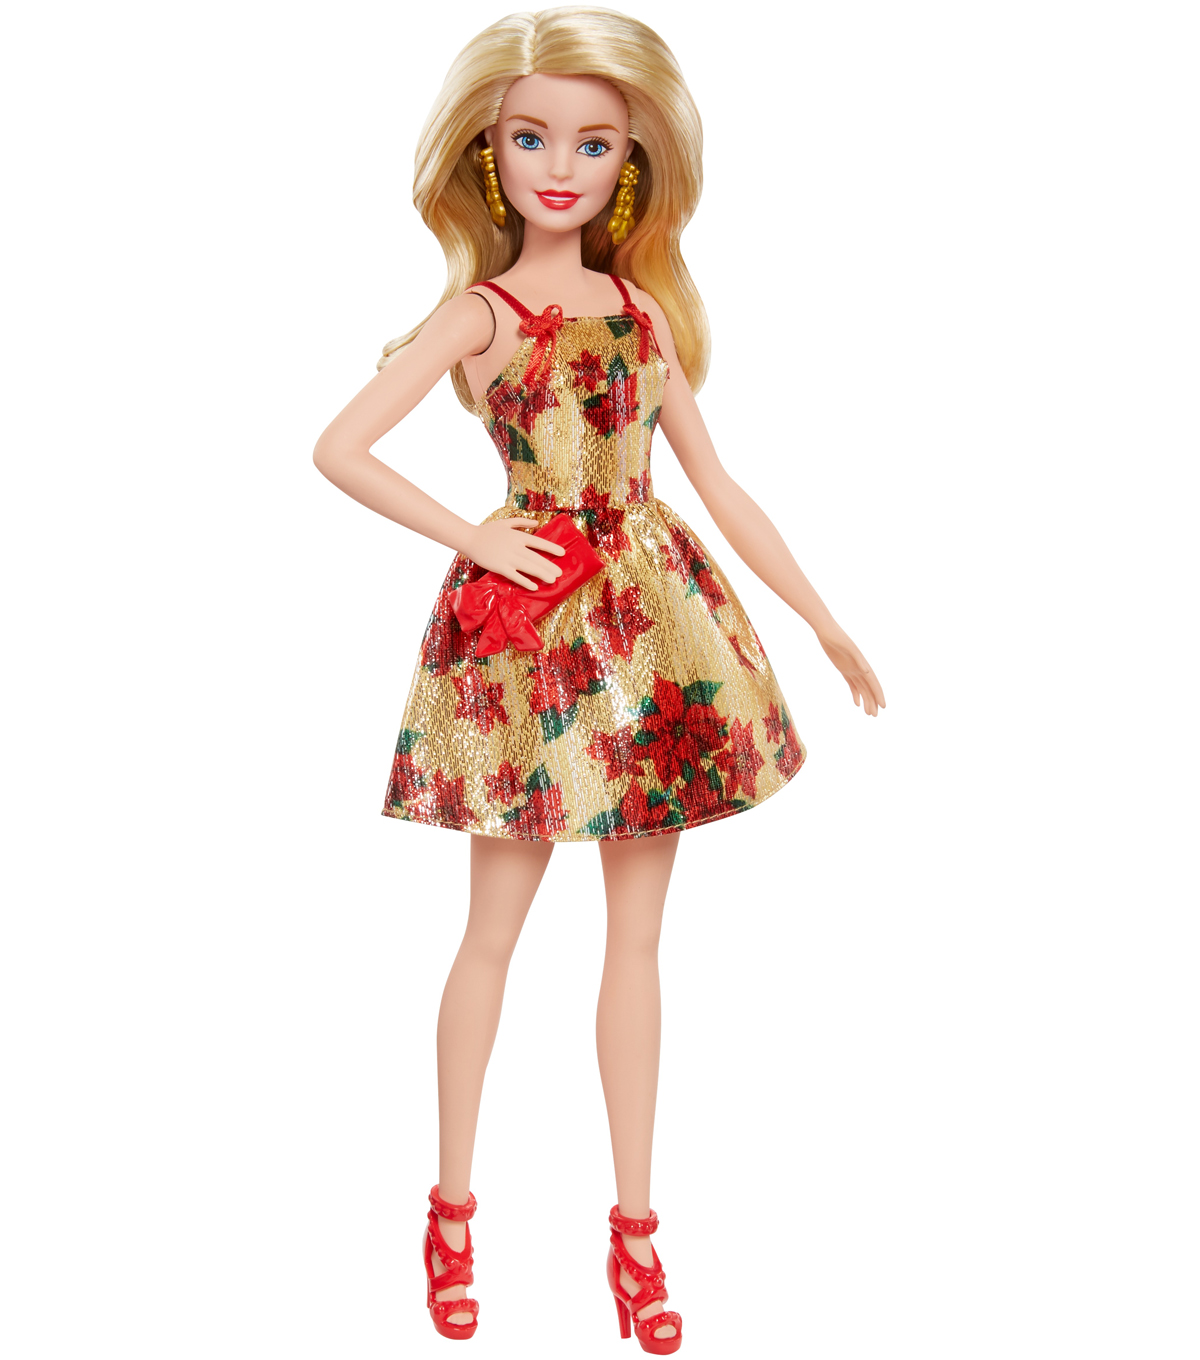 Barbie Doll with Blonde Hair in Holiday Look